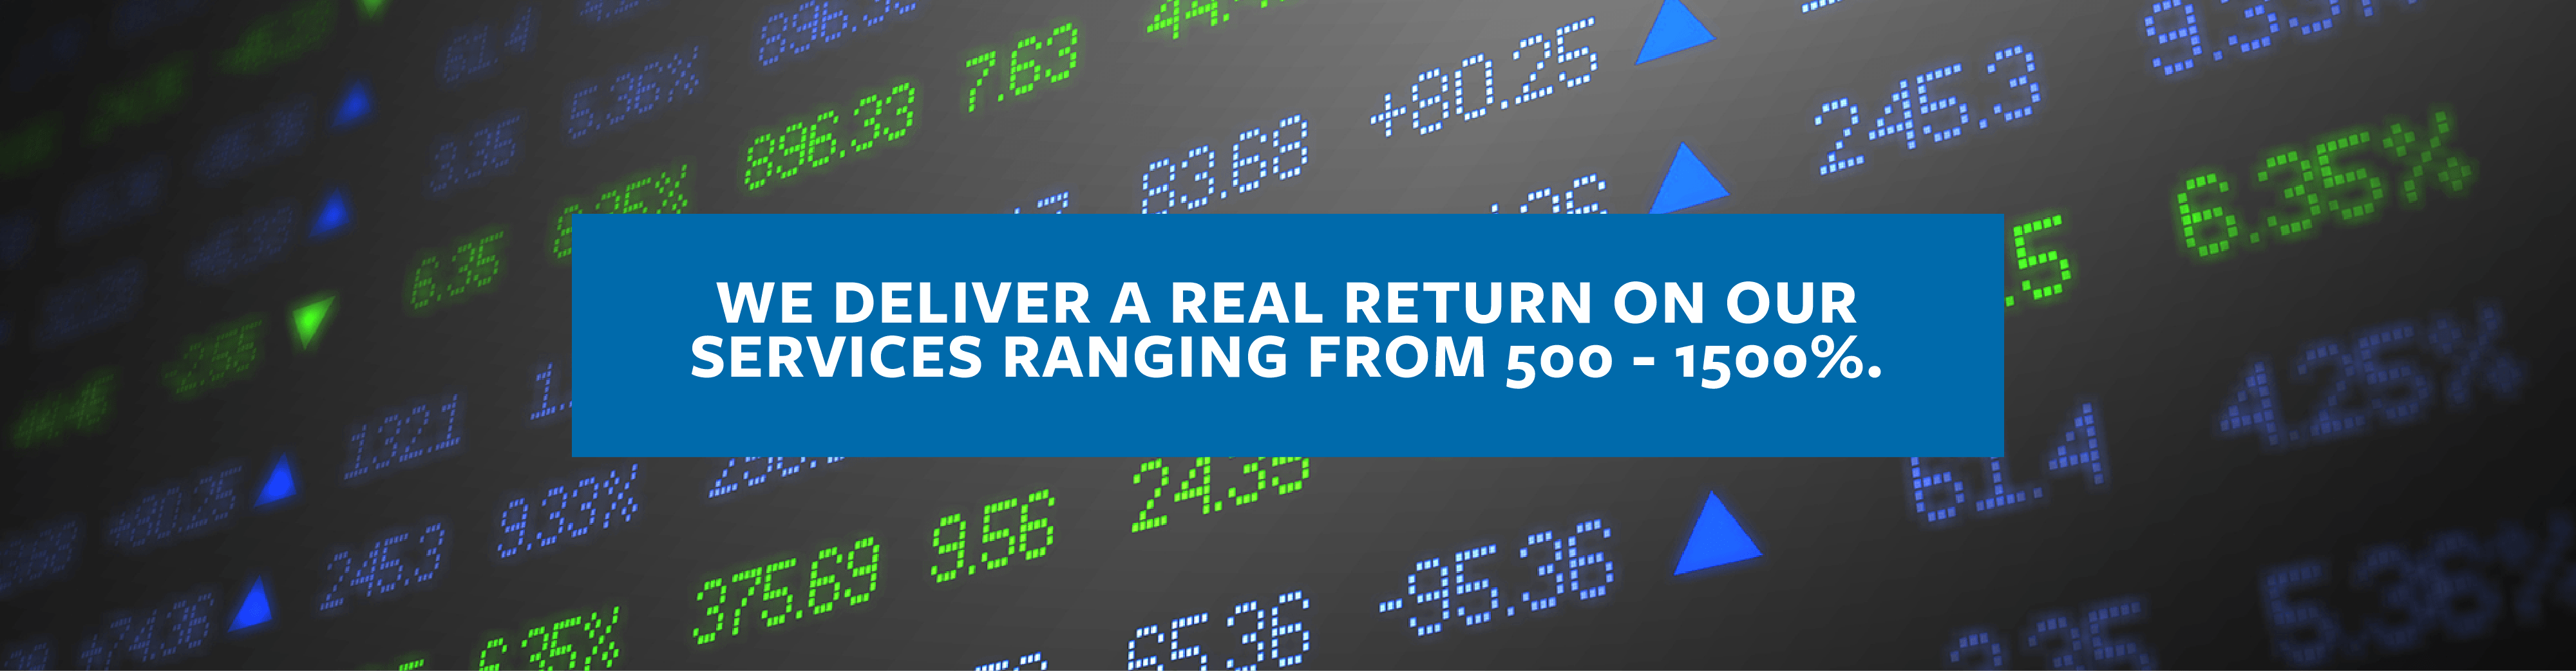 We deliver a real return on our services ranging from 500 - 1500%.